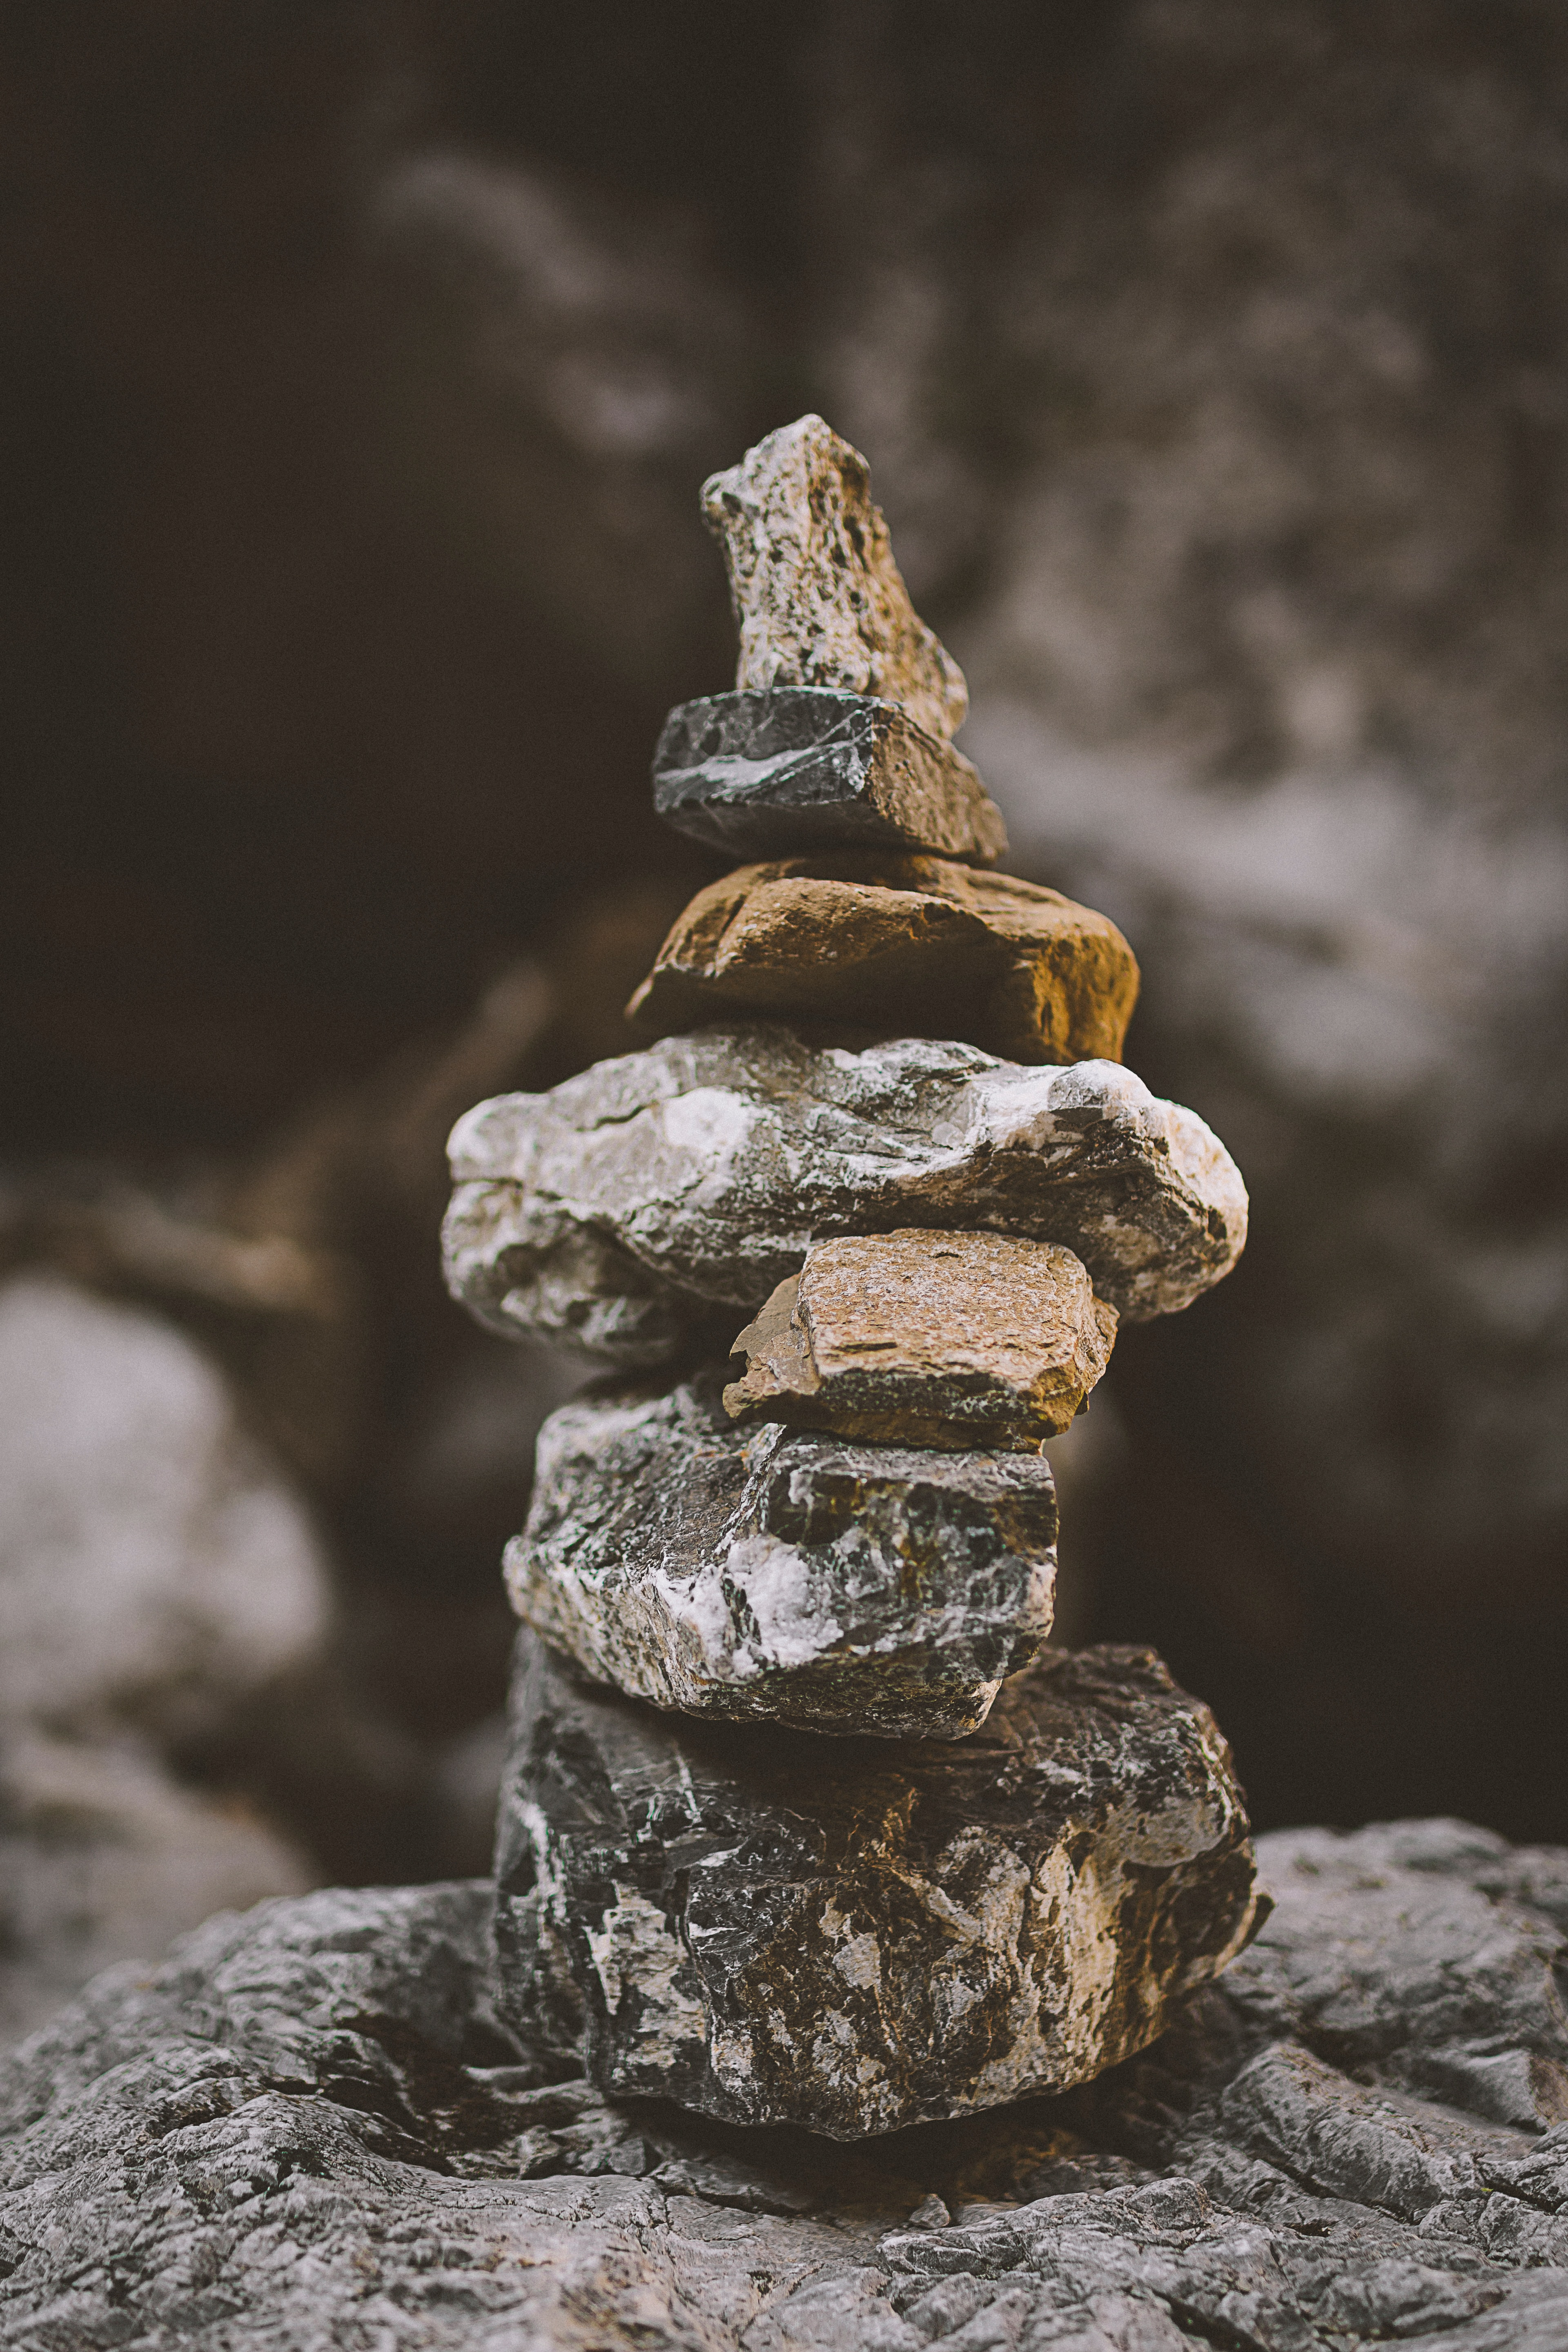 106531 download wallpaper Stones, Rock, Balance, Miscellanea, Miscellaneous, Stone, Equilibrium screensavers and pictures for free